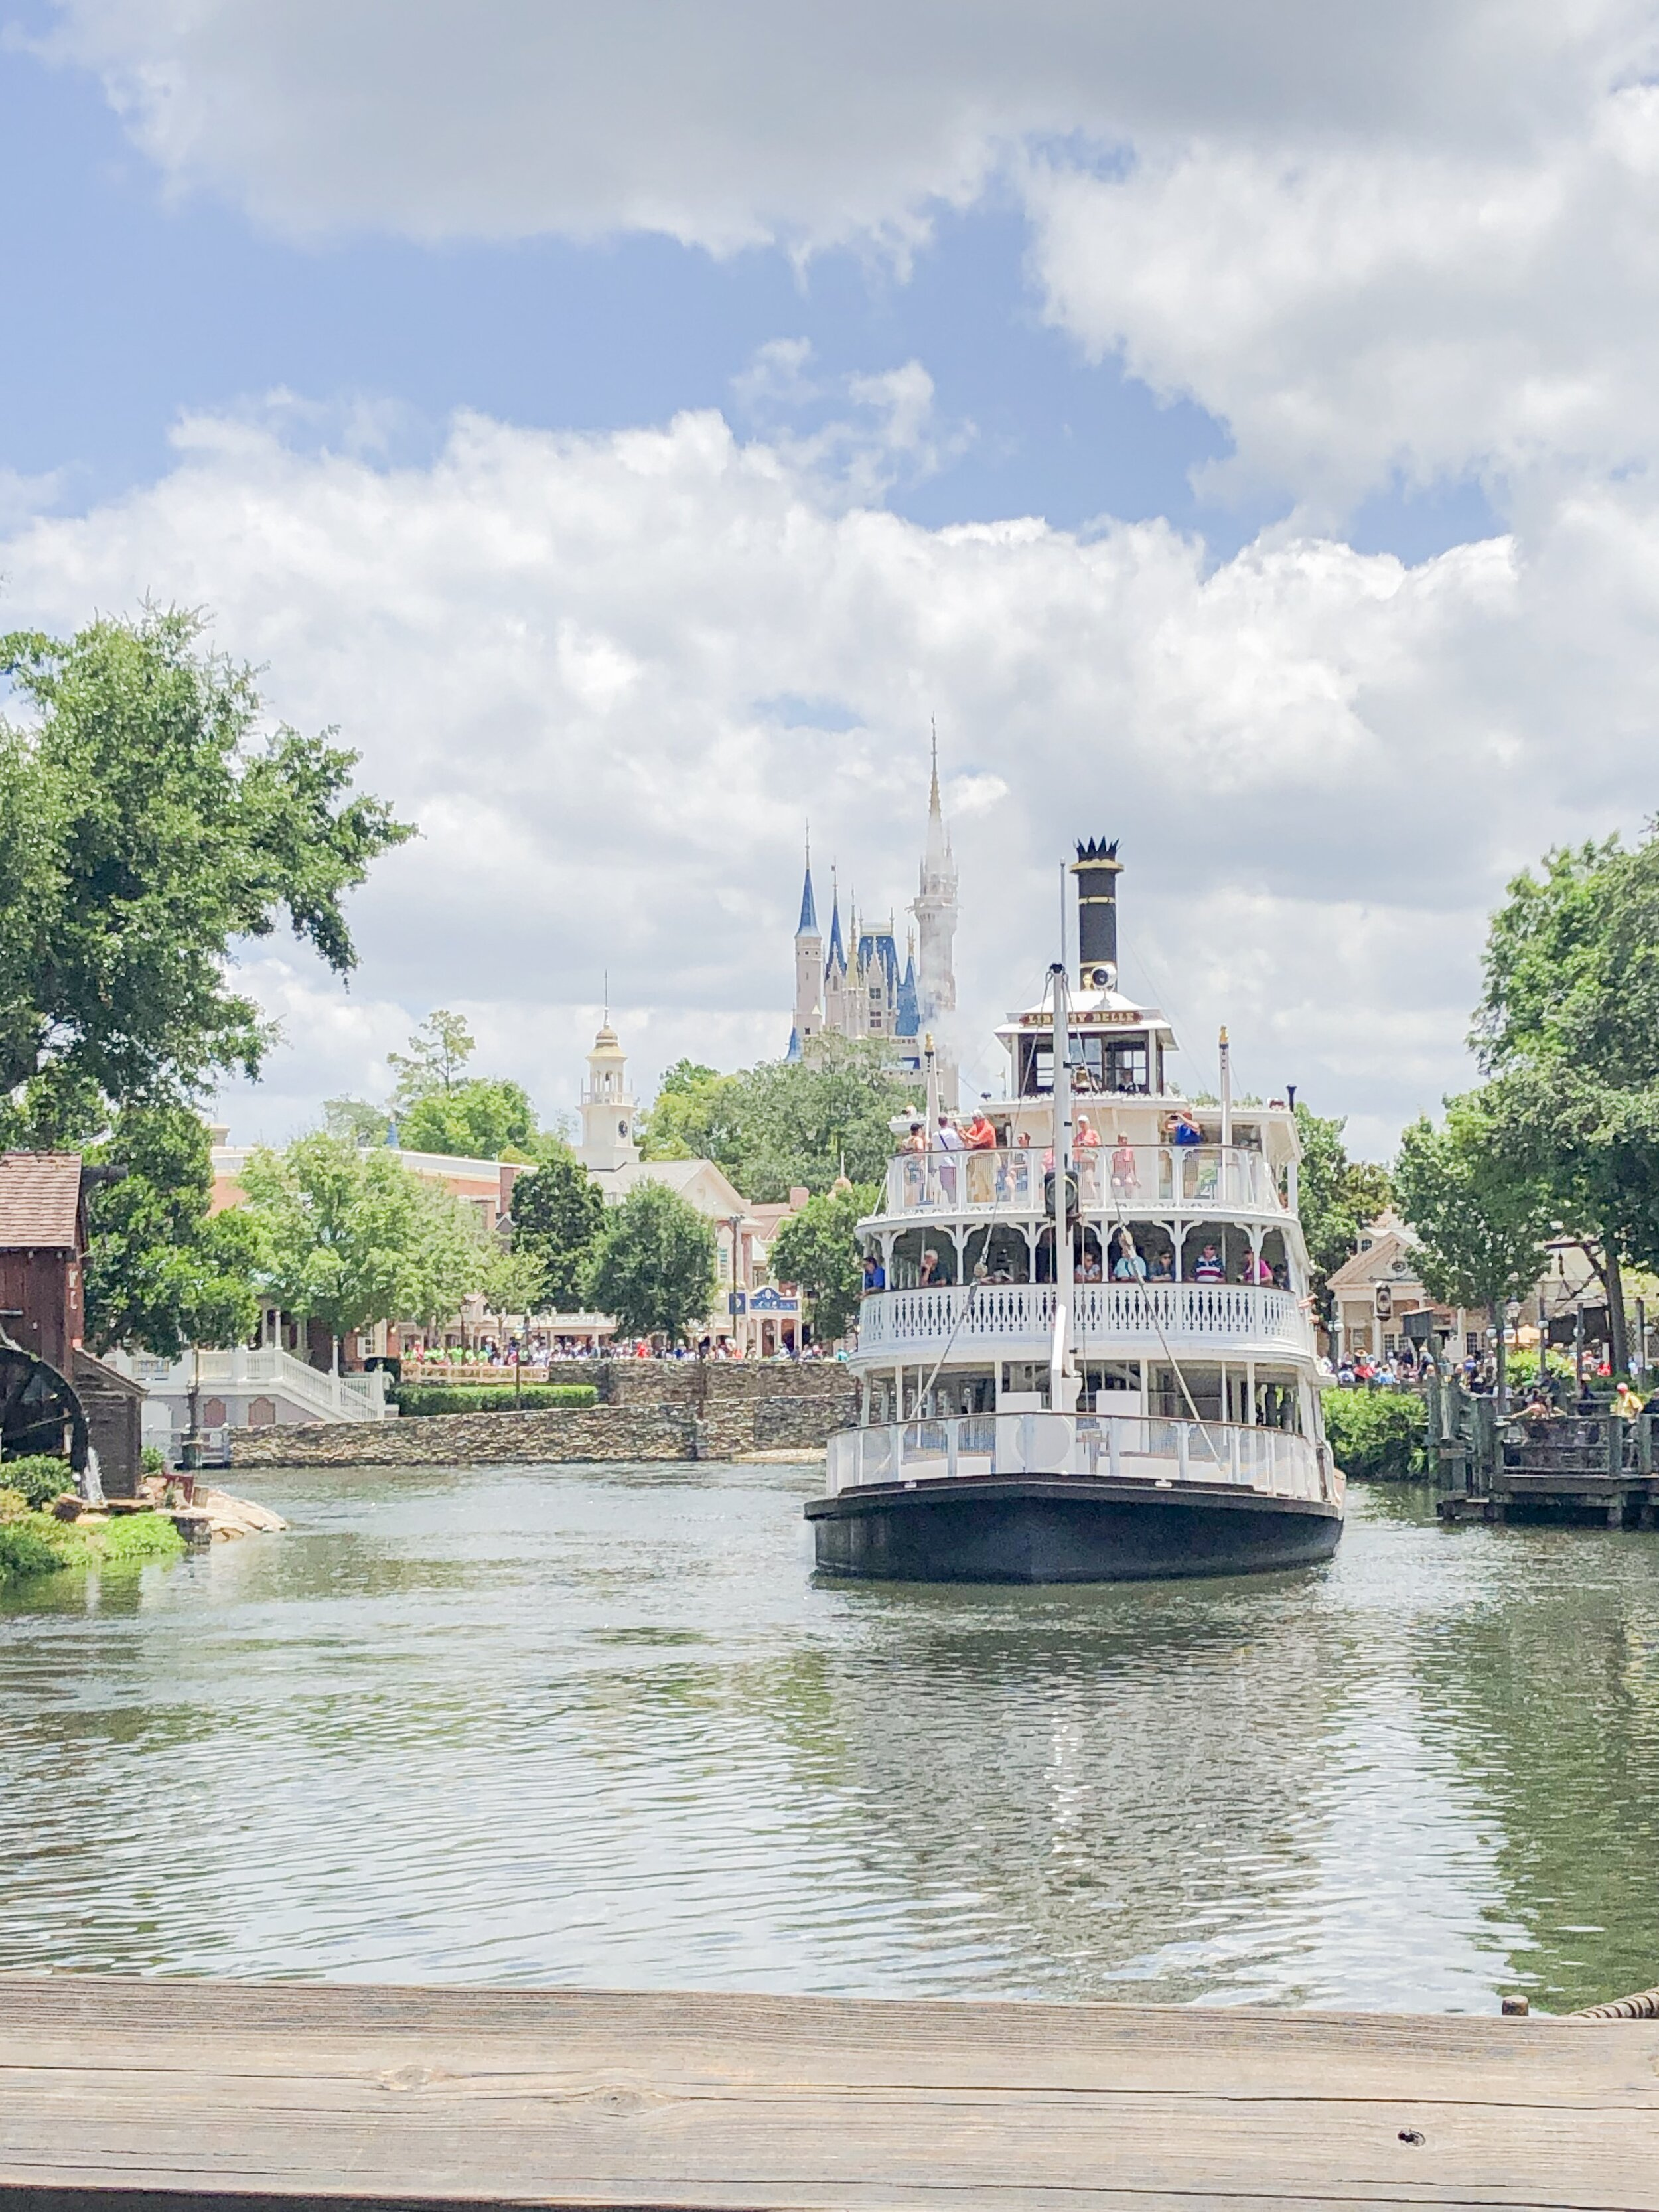 Riverboat with the castle in the background at Magic Kingdom in Disney World.